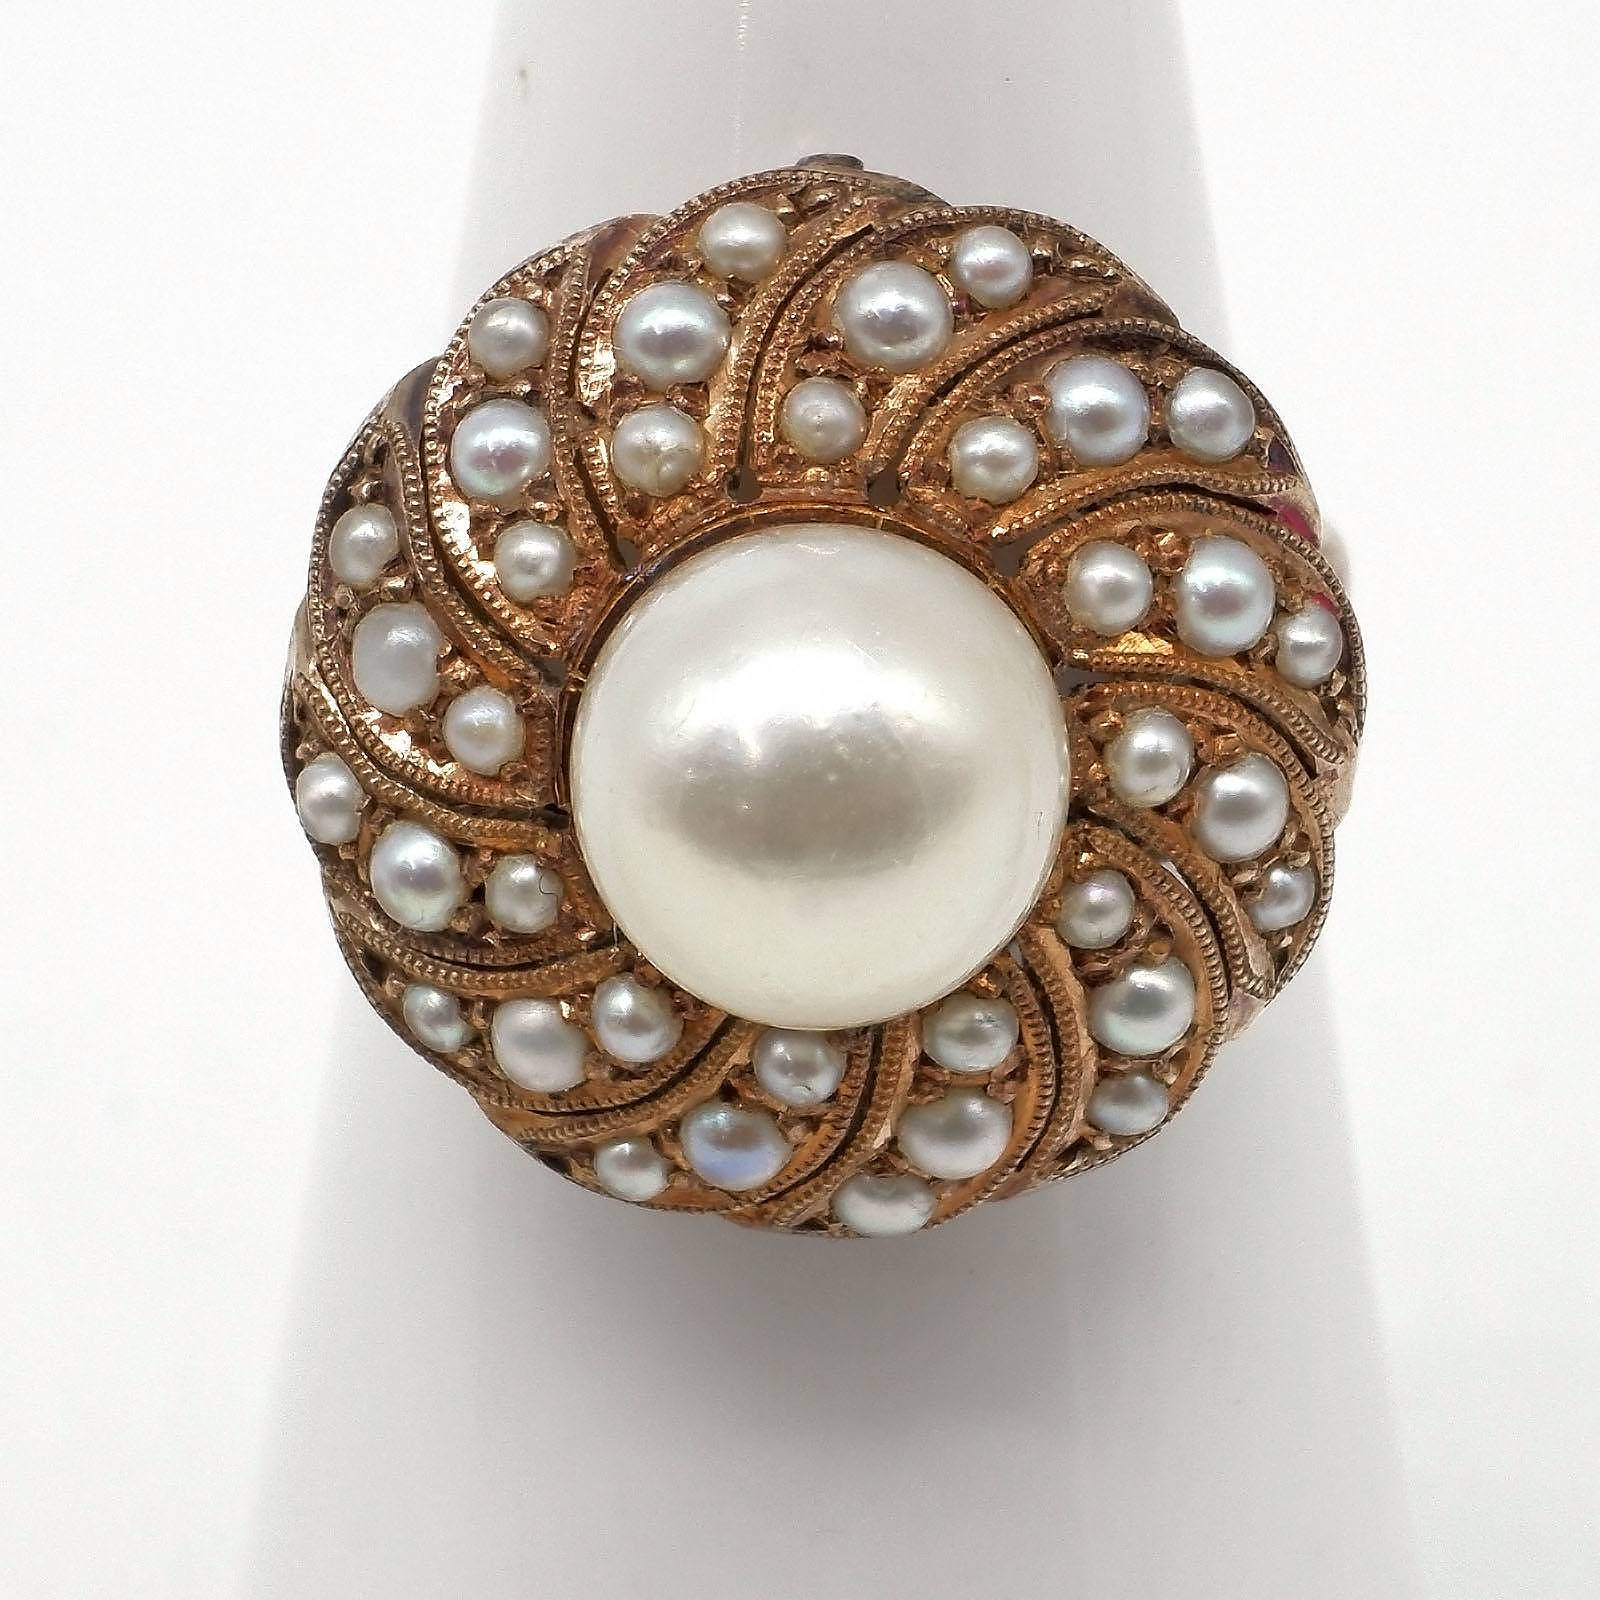 '14ct Yellow Gold Pearl Ring with Round Cluster of 36 Small Seed Pearls in Parve Setting in Swirl, 5.5g'